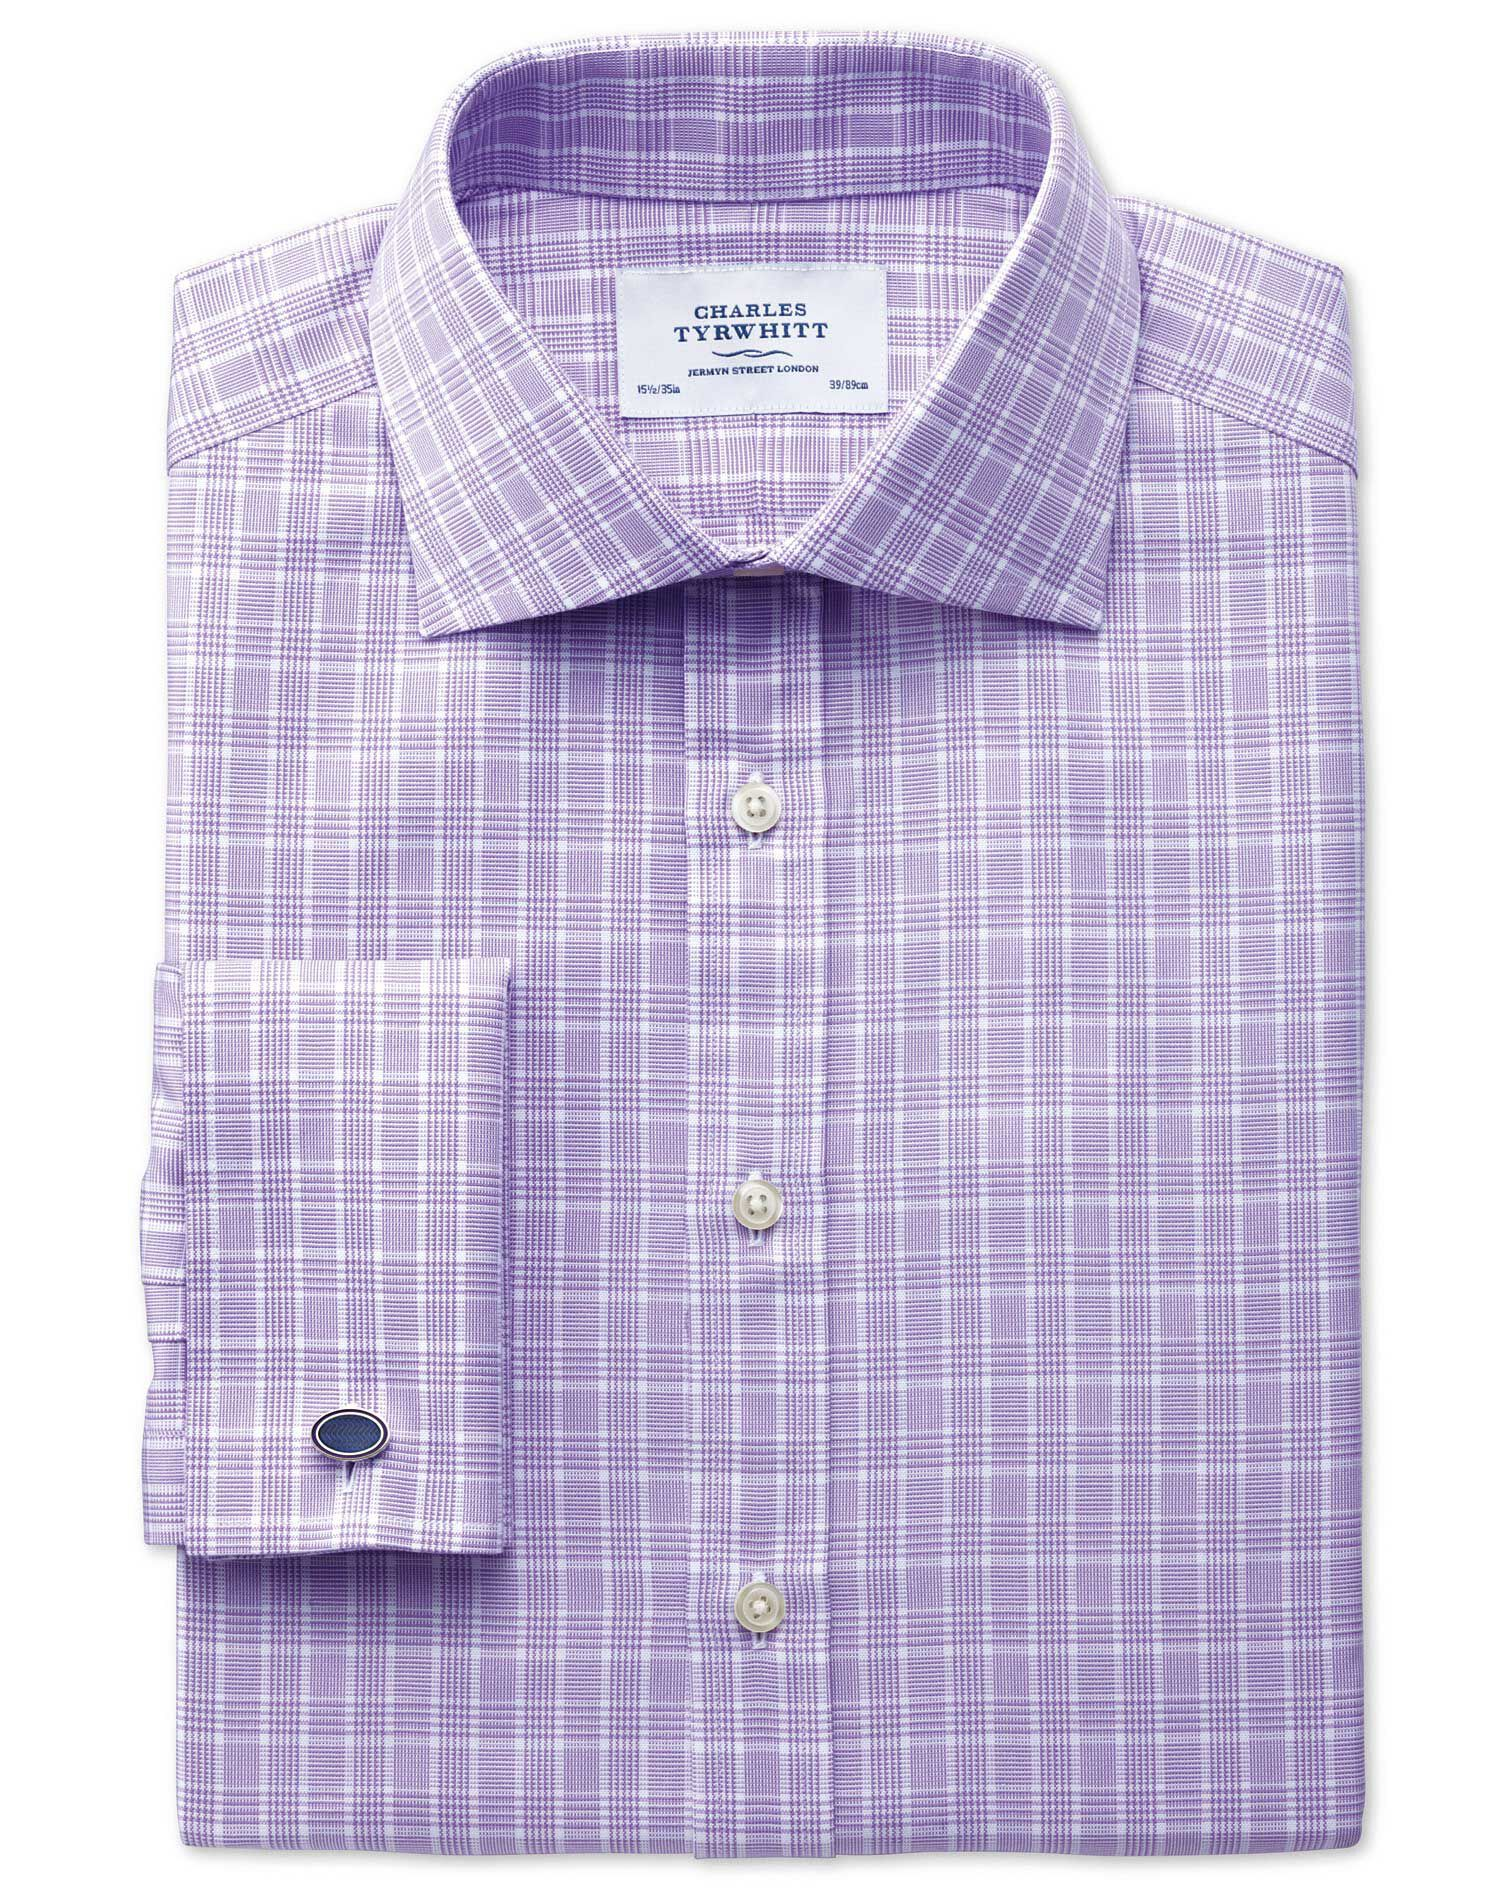 Extra Slim Fit Prince Of Wales Lilac Cotton Formal Shirt Double Cuff Size 15/33 by Charles Tyrwhitt